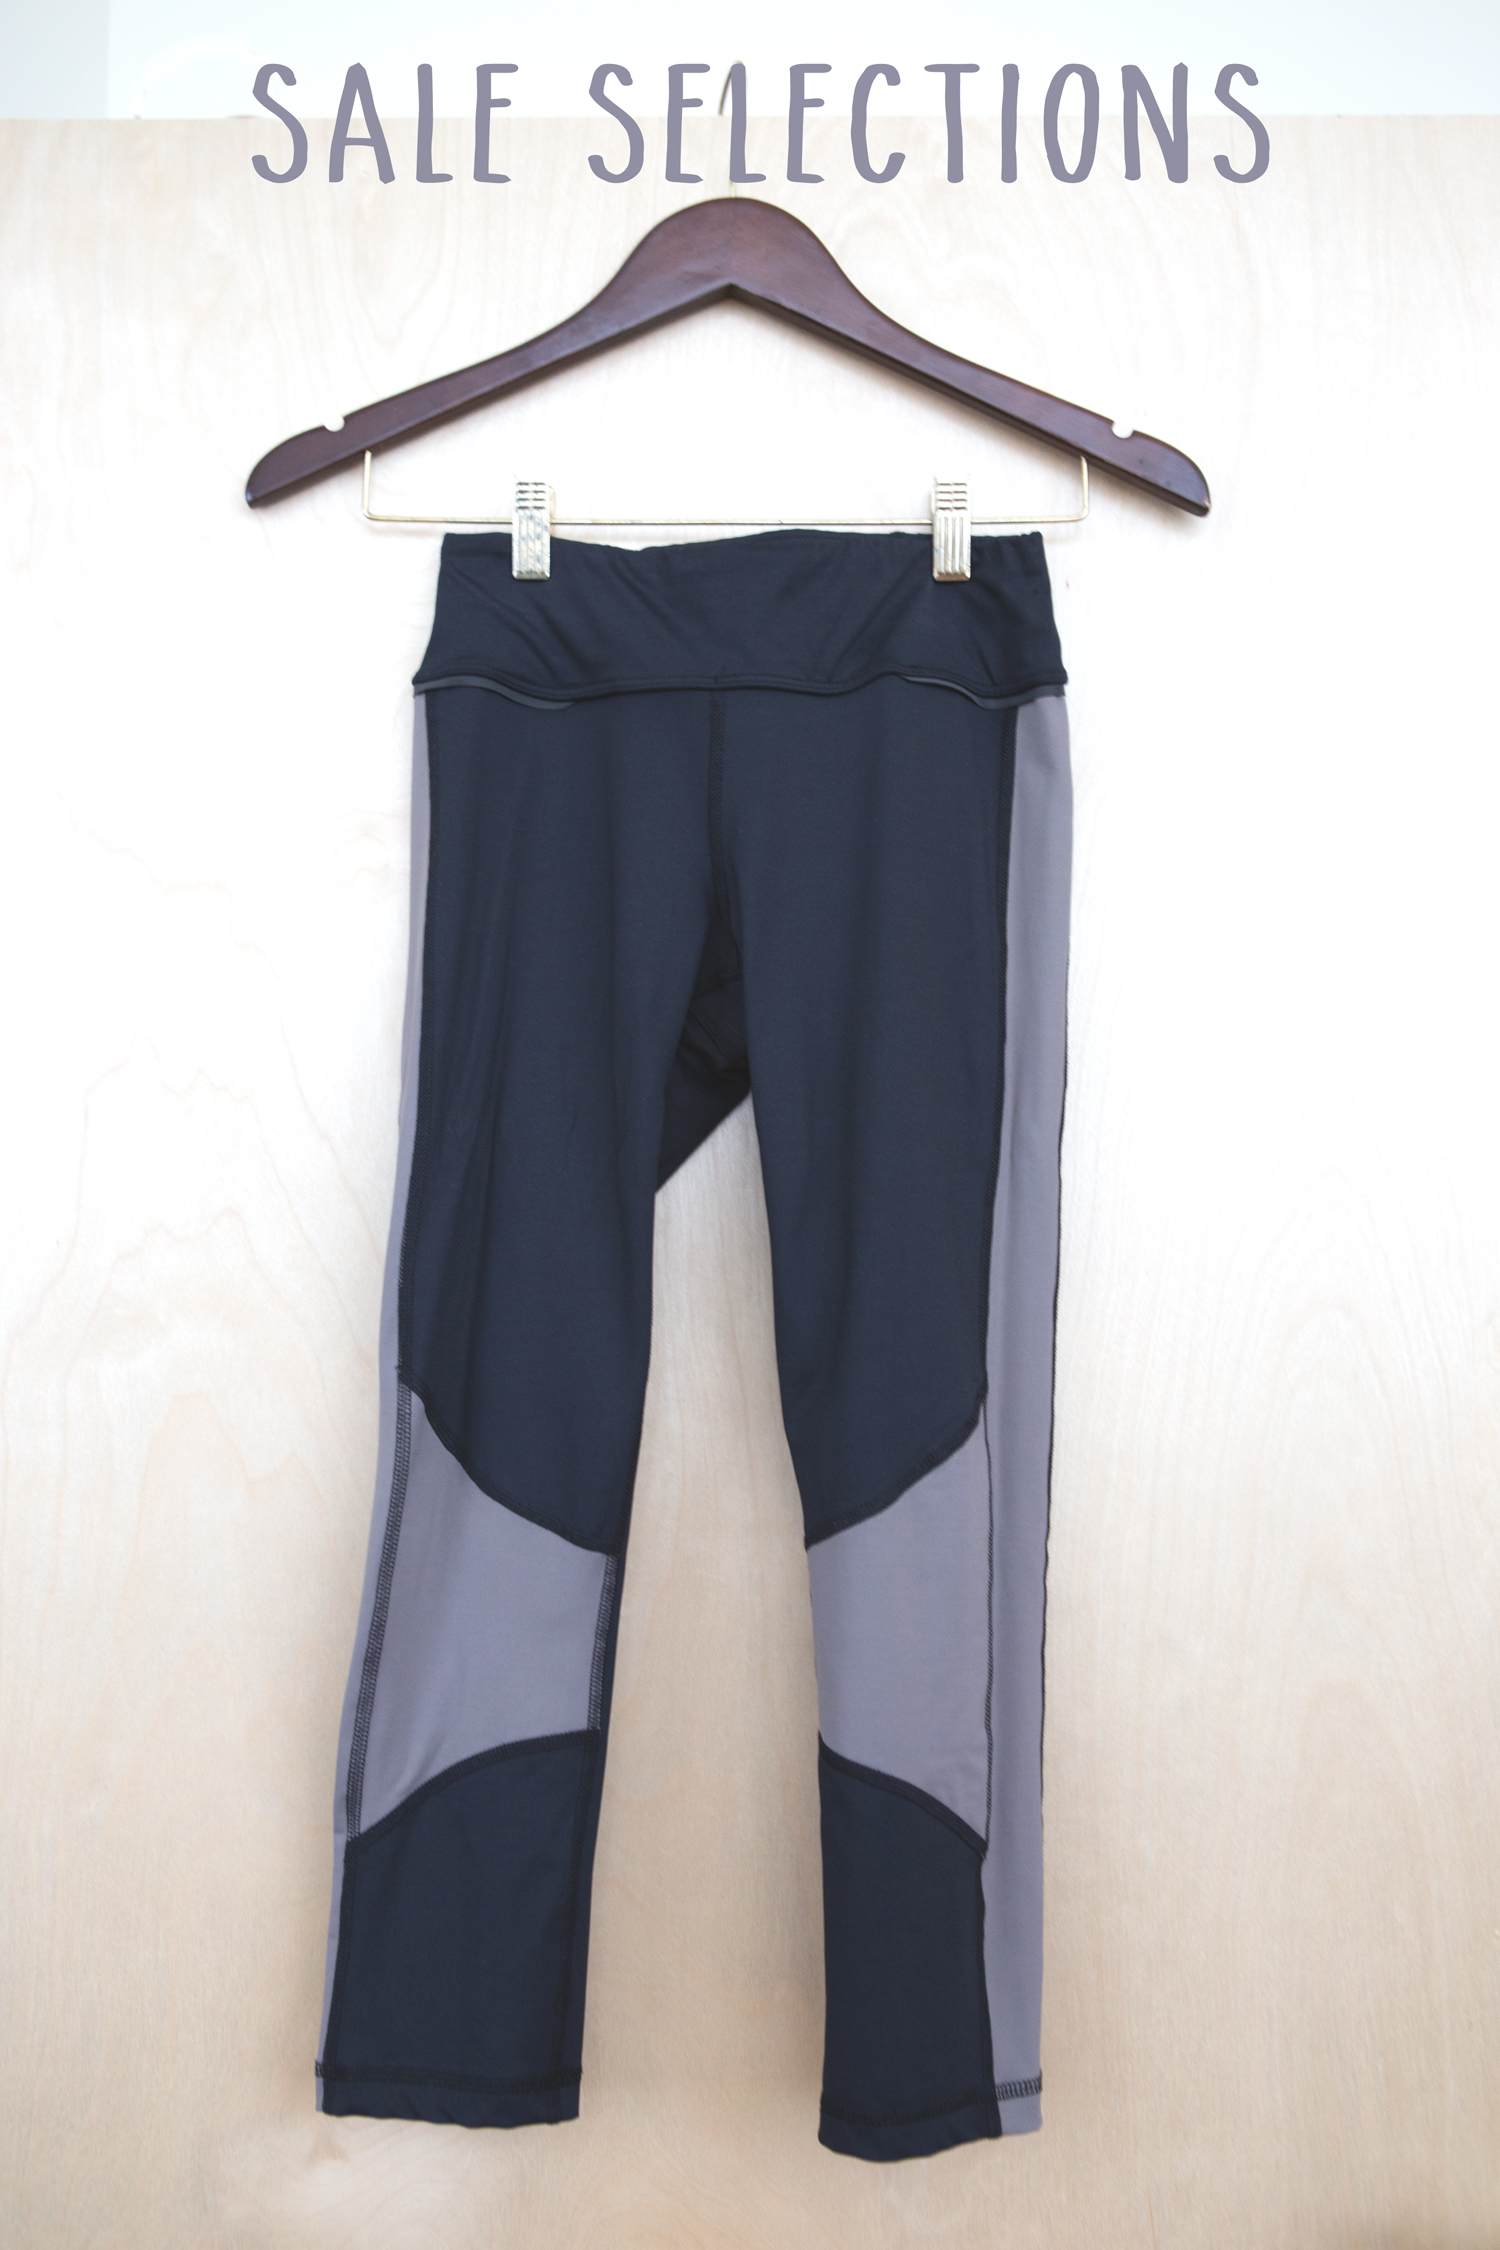 Sale selections! These leggings by Alala are on sale!